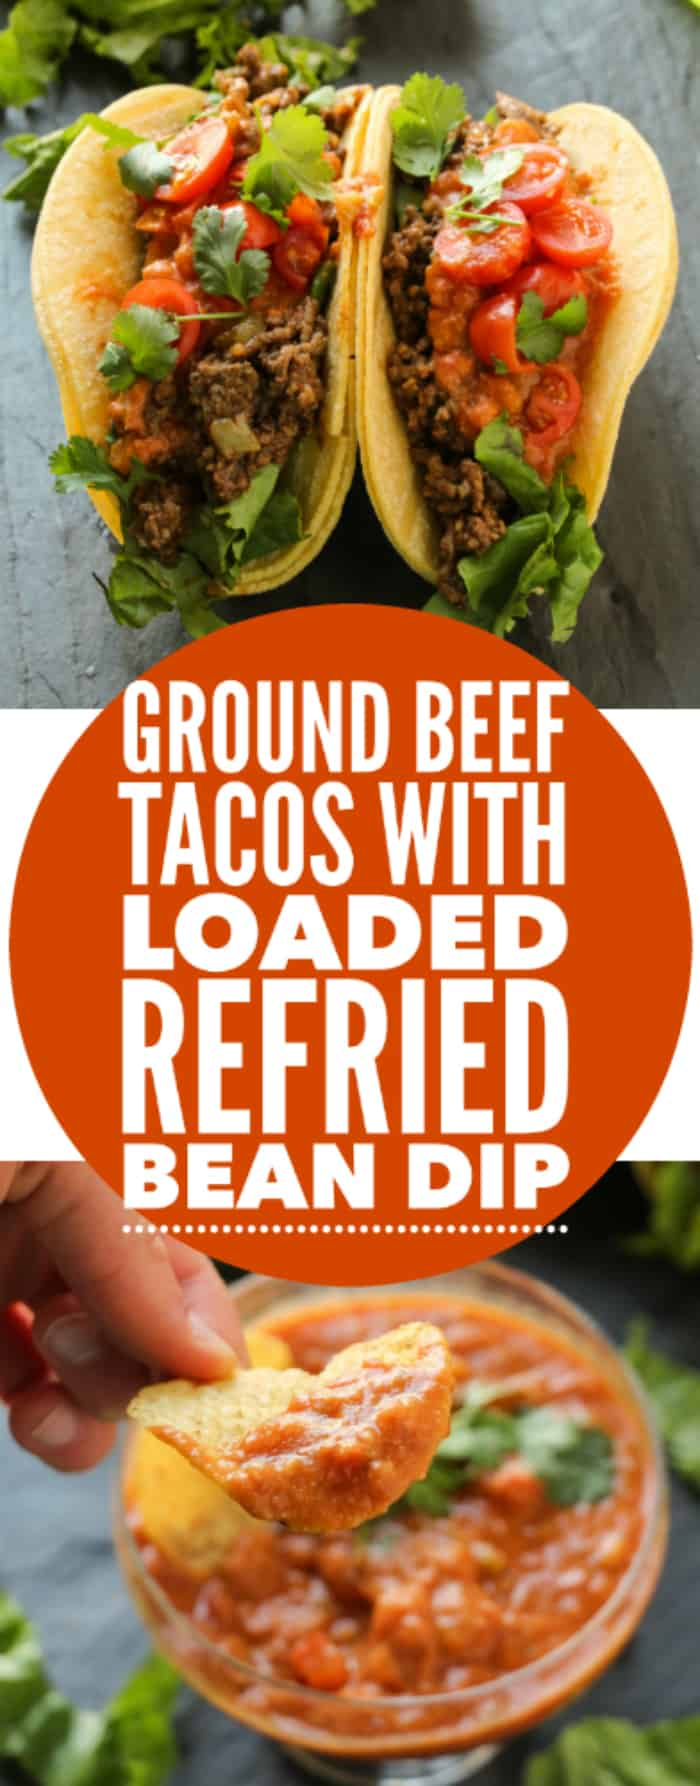 Ground Beef Tacos With Loaded Refried Bean Sauce Layers